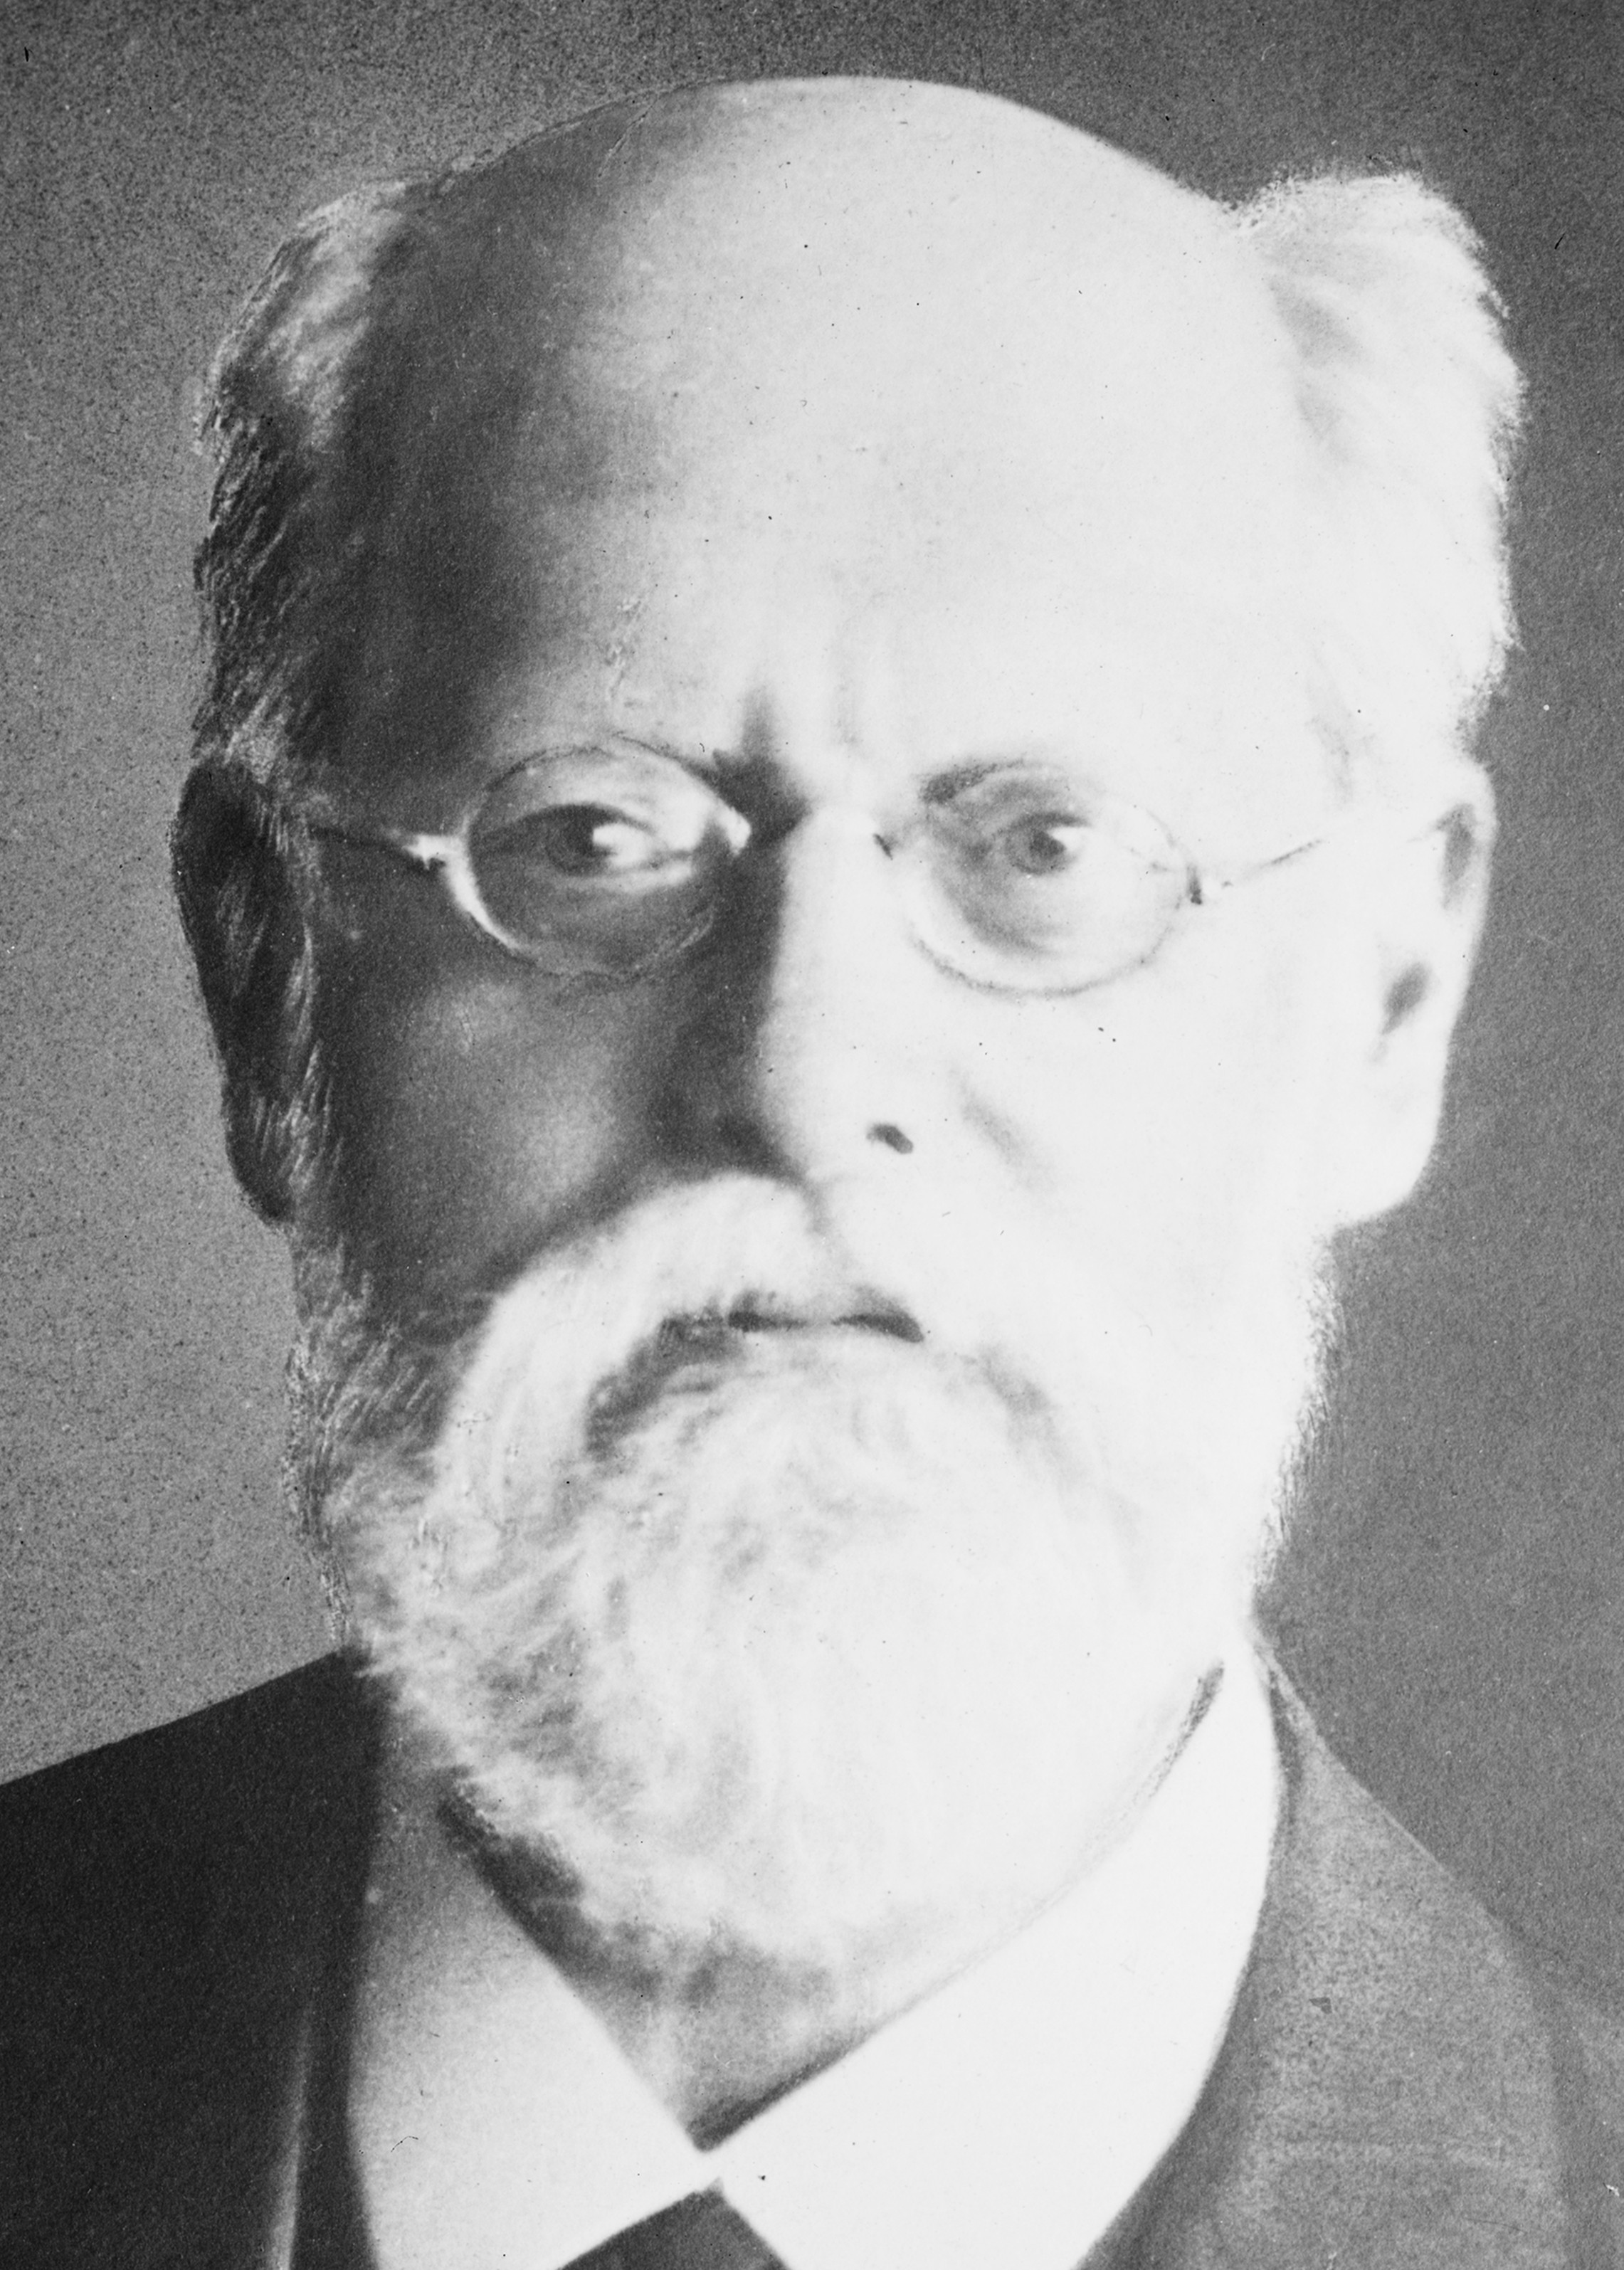 Depiction of Karl Kautsky